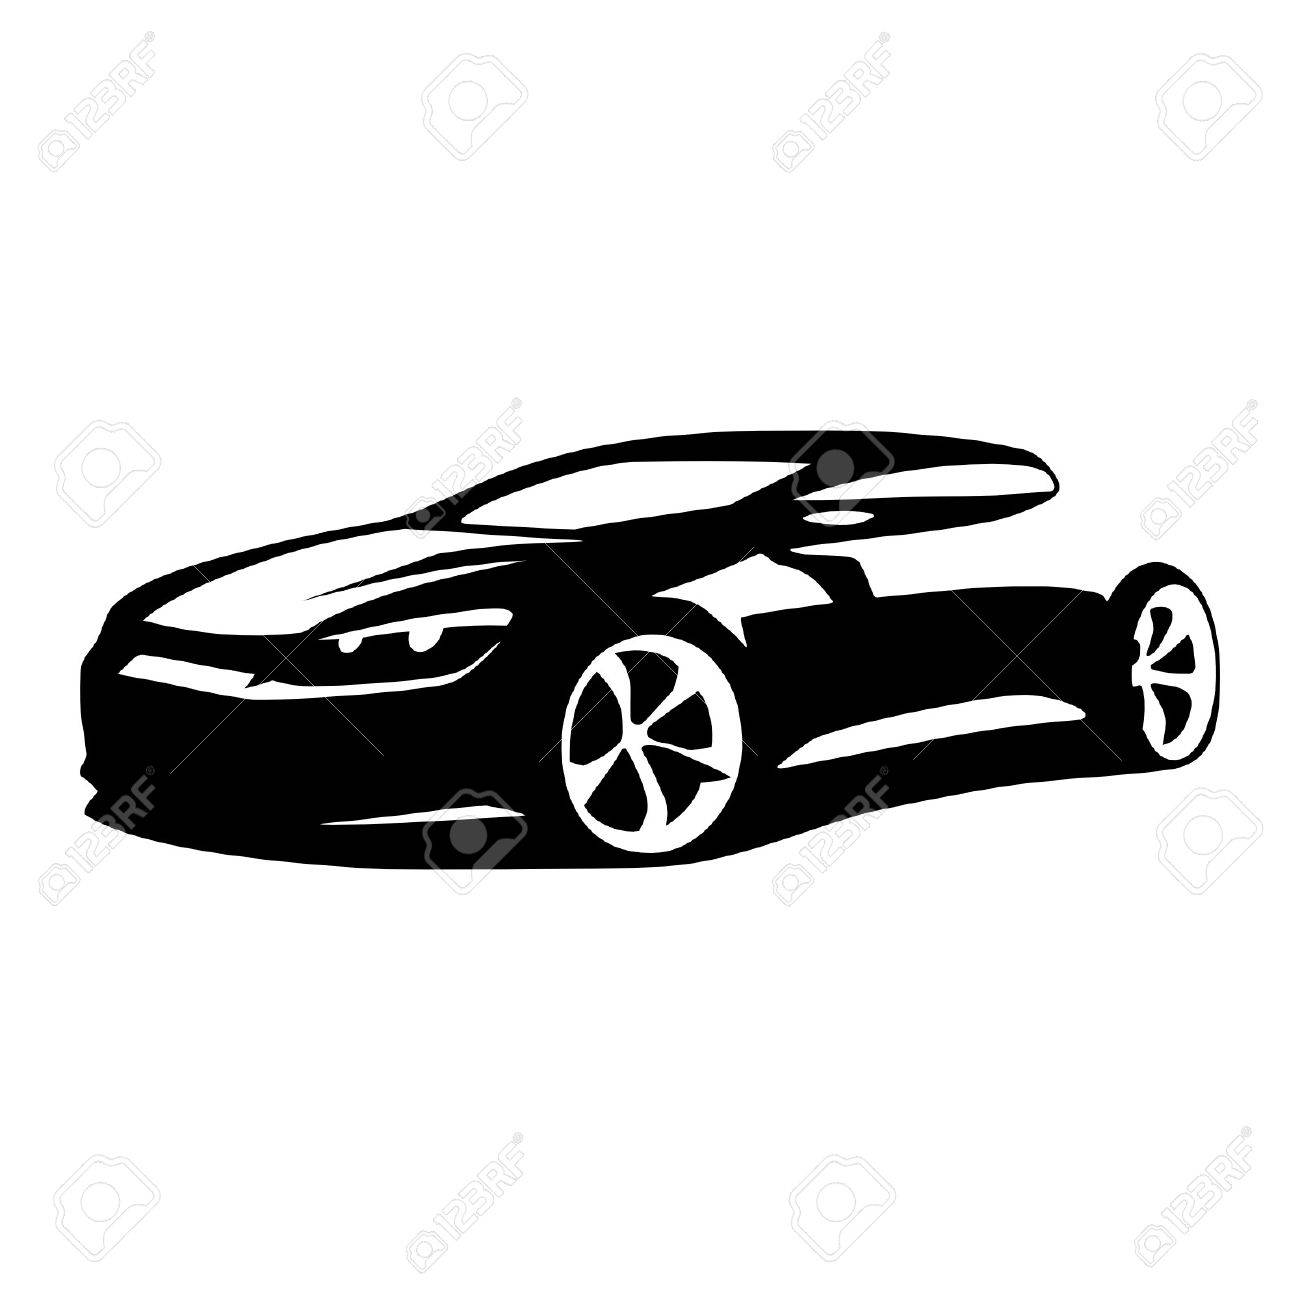 car silhouette vector royalty free cliparts vectors and stock rh 123rf com old car silhouette vector f1 car silhouette vector